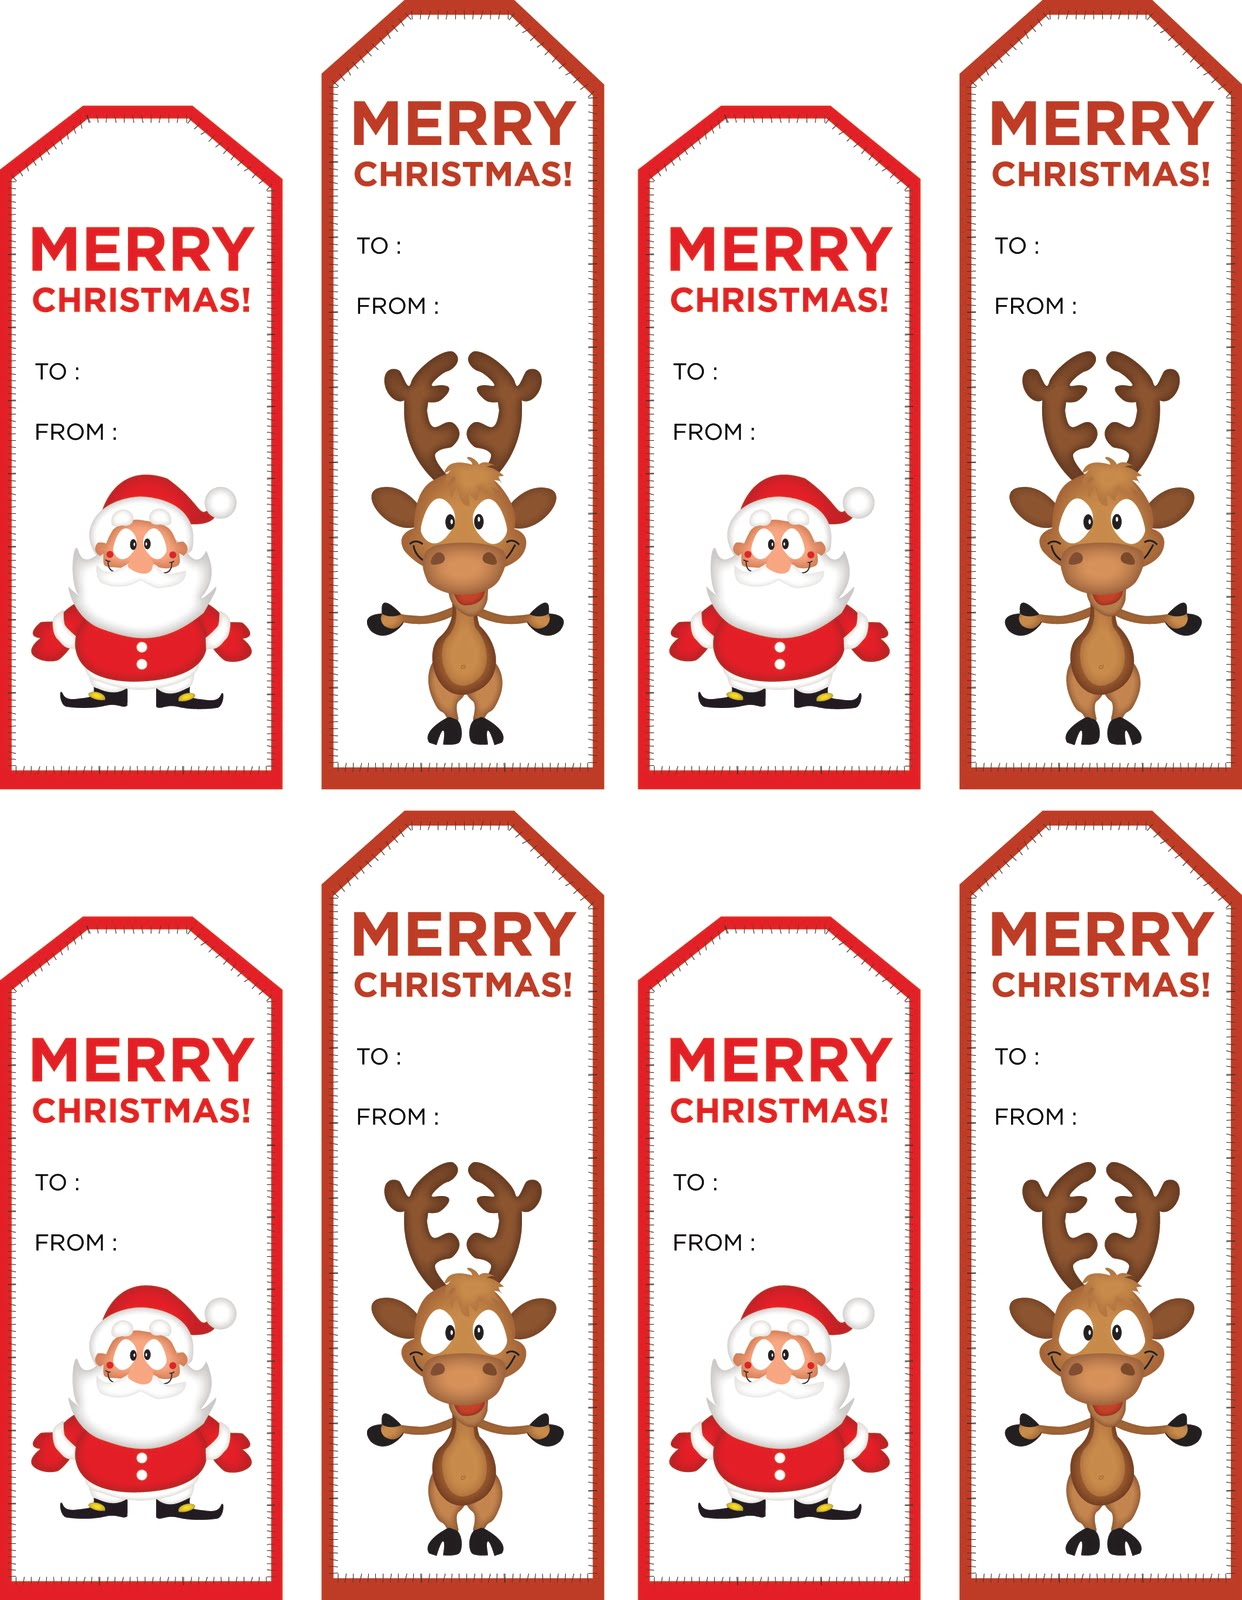 graphic about Free Printable Santa Gift Tags called 40 Special Printable Xmas Present Tags